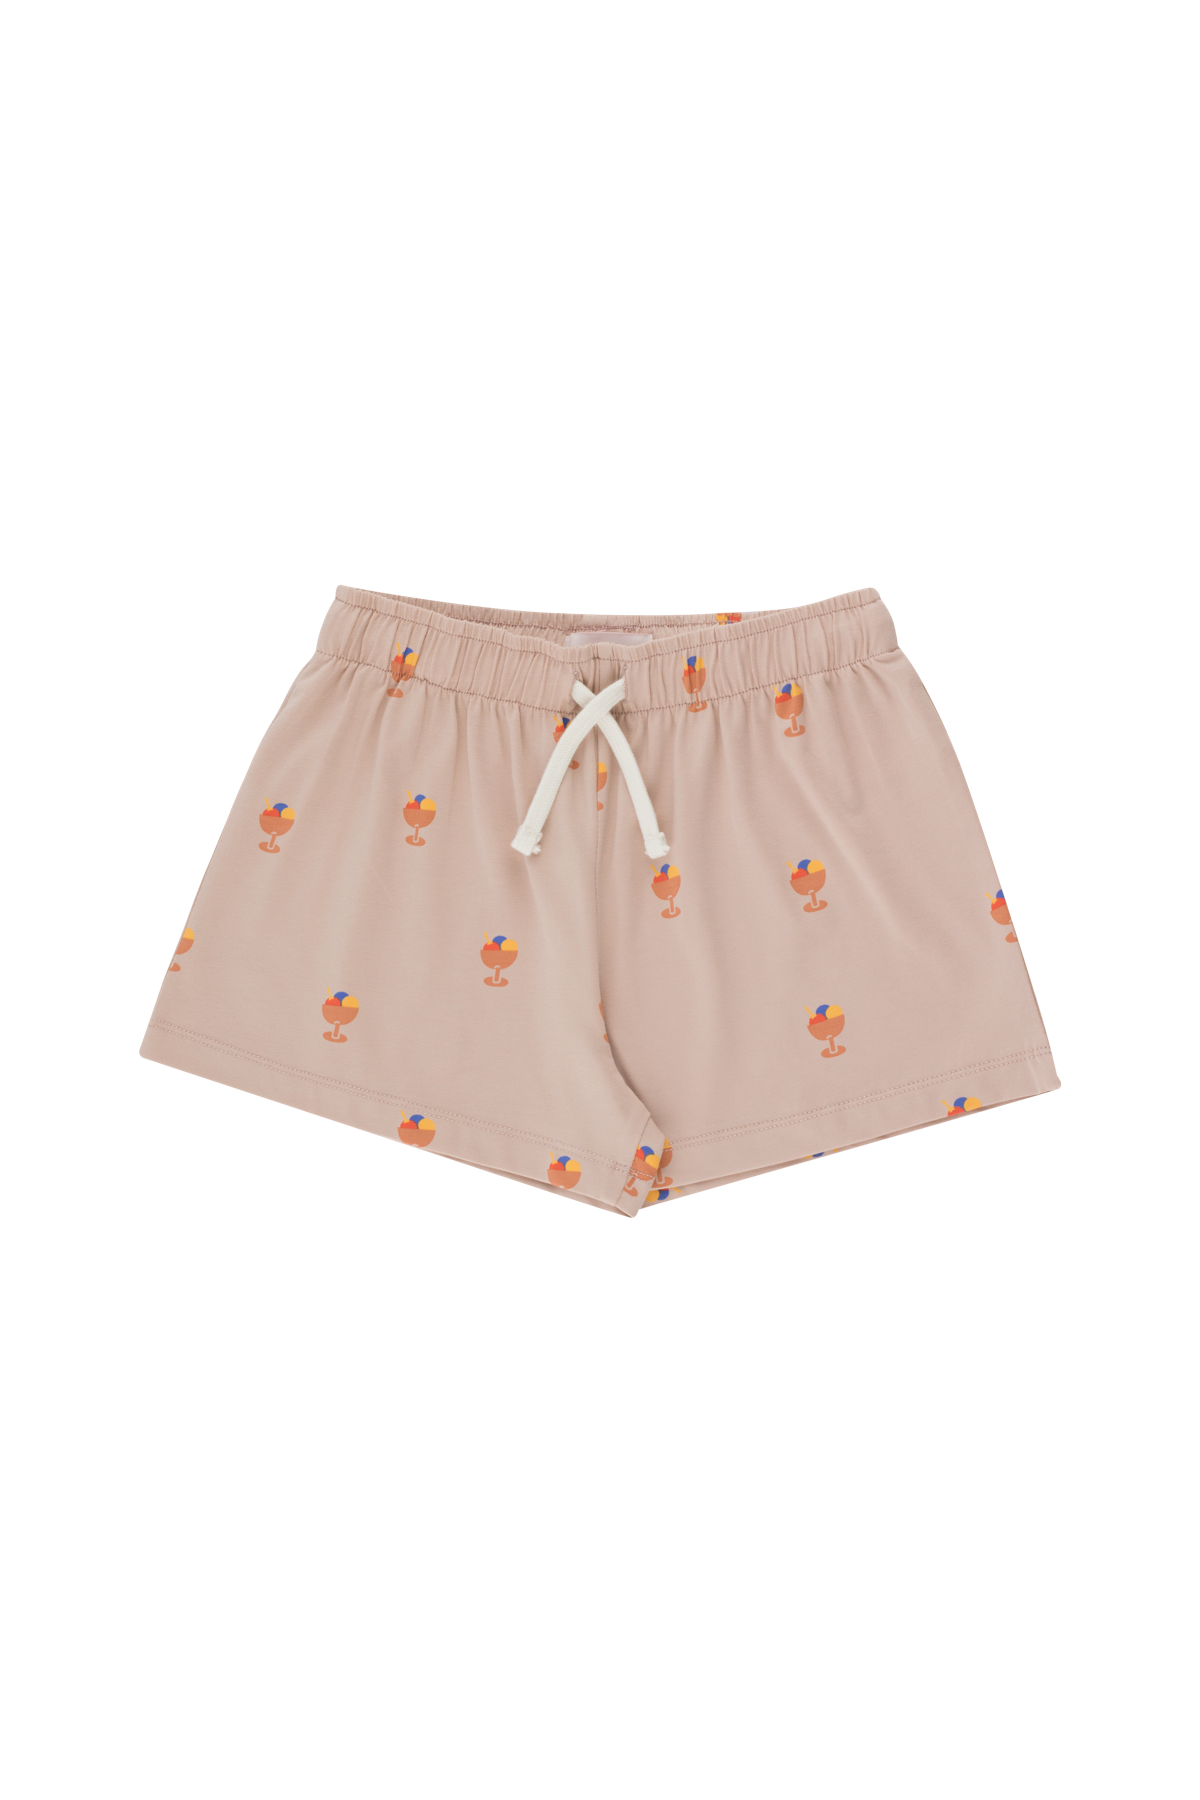 tinycottons ice cream cup shorts dusty pink papaya